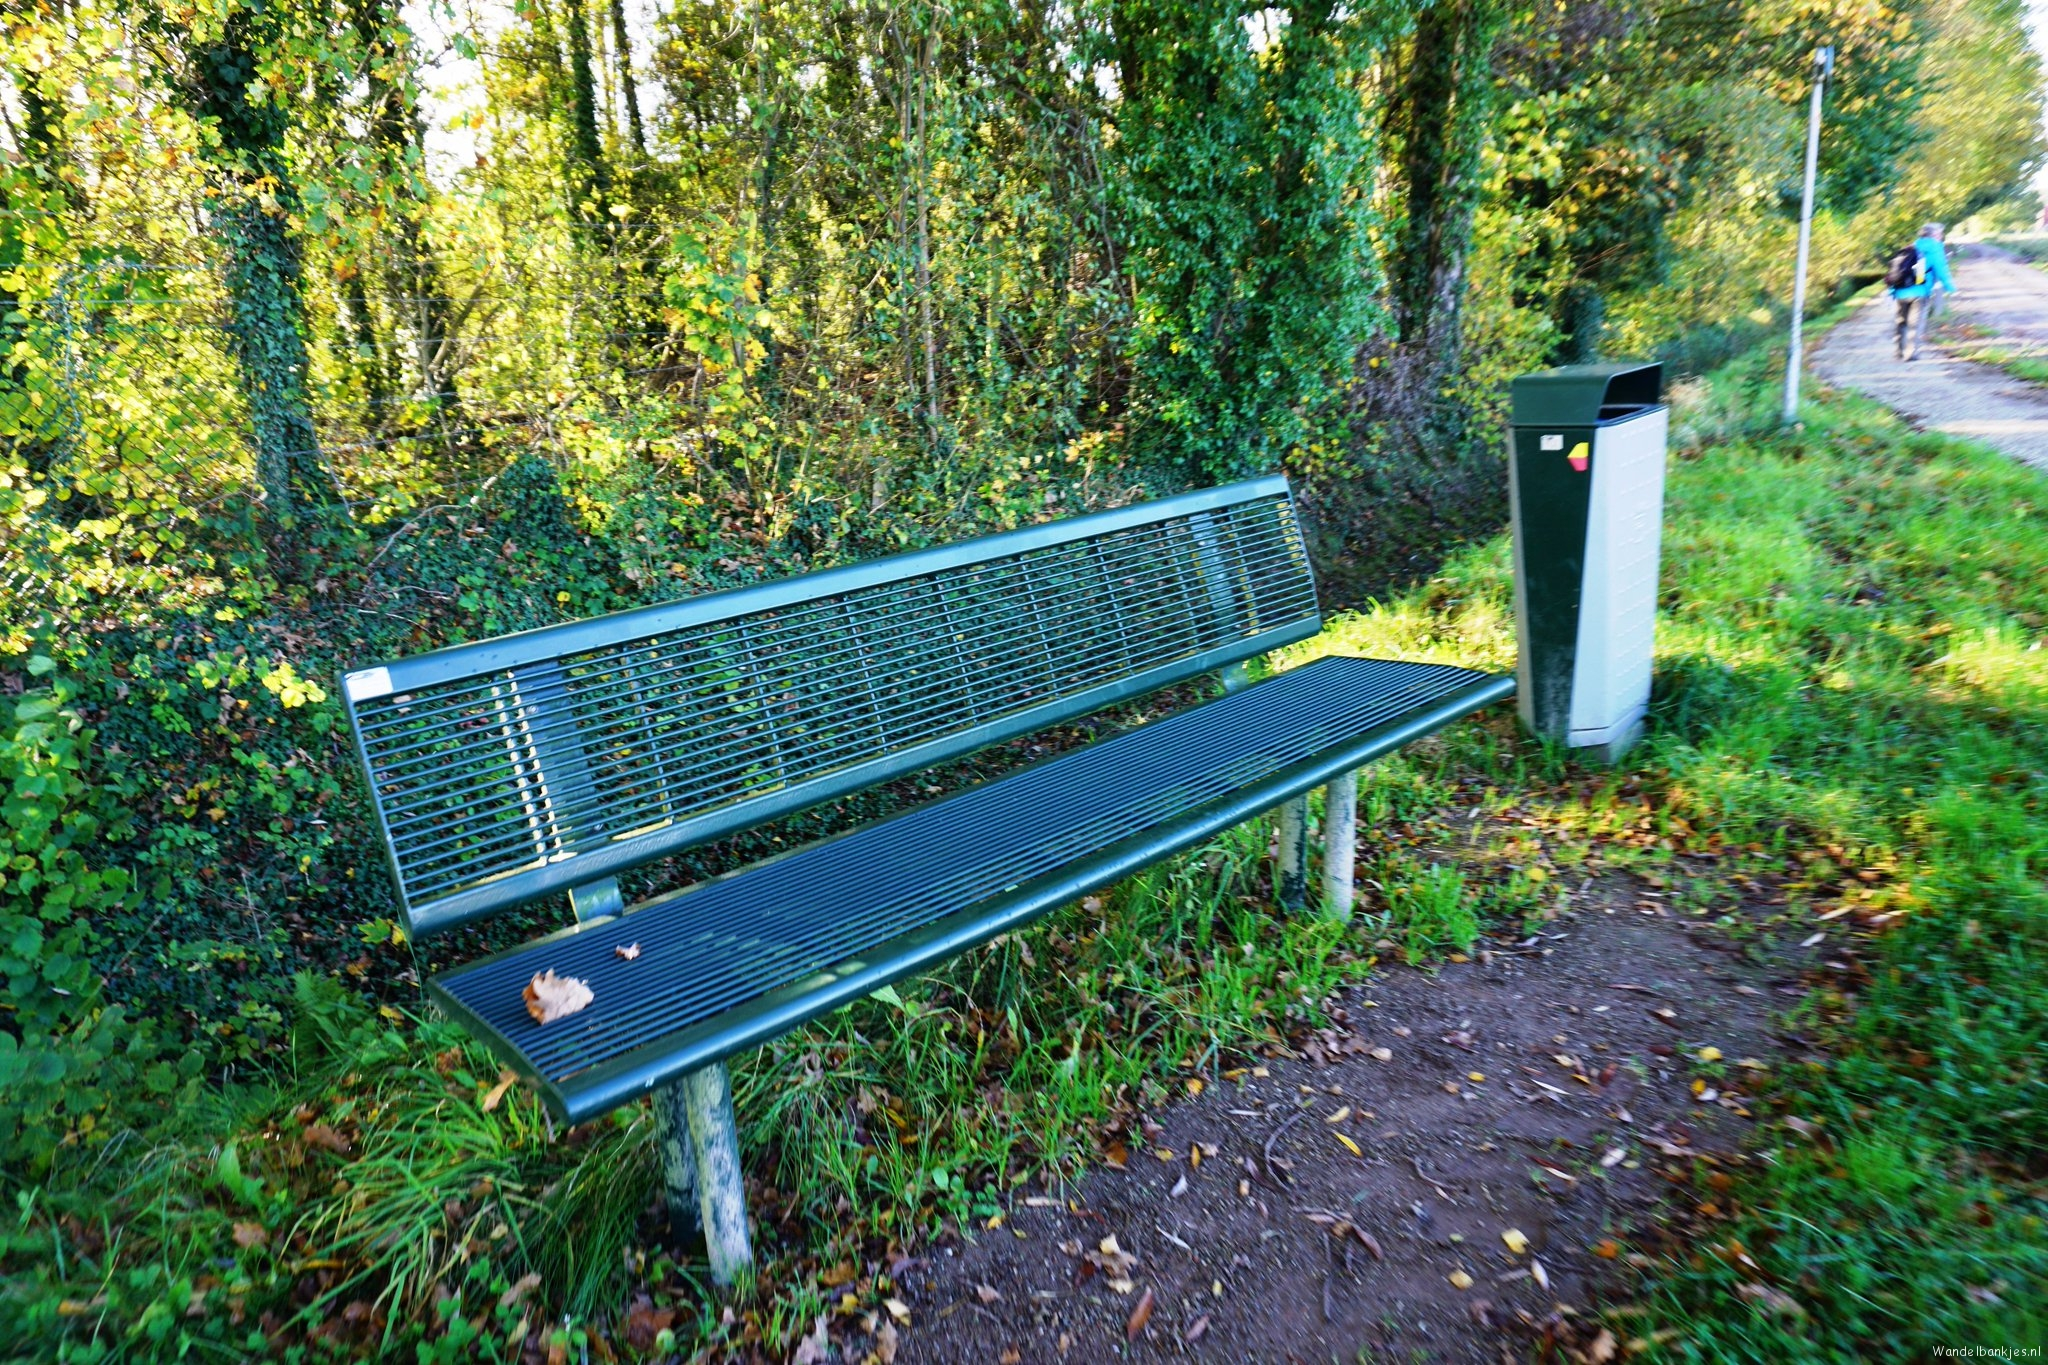 rt-jenjdevries-walking-benches-bench-at-the-foot-of-the-quarry-near-winterswijk-httpst-cogpzddmffwd